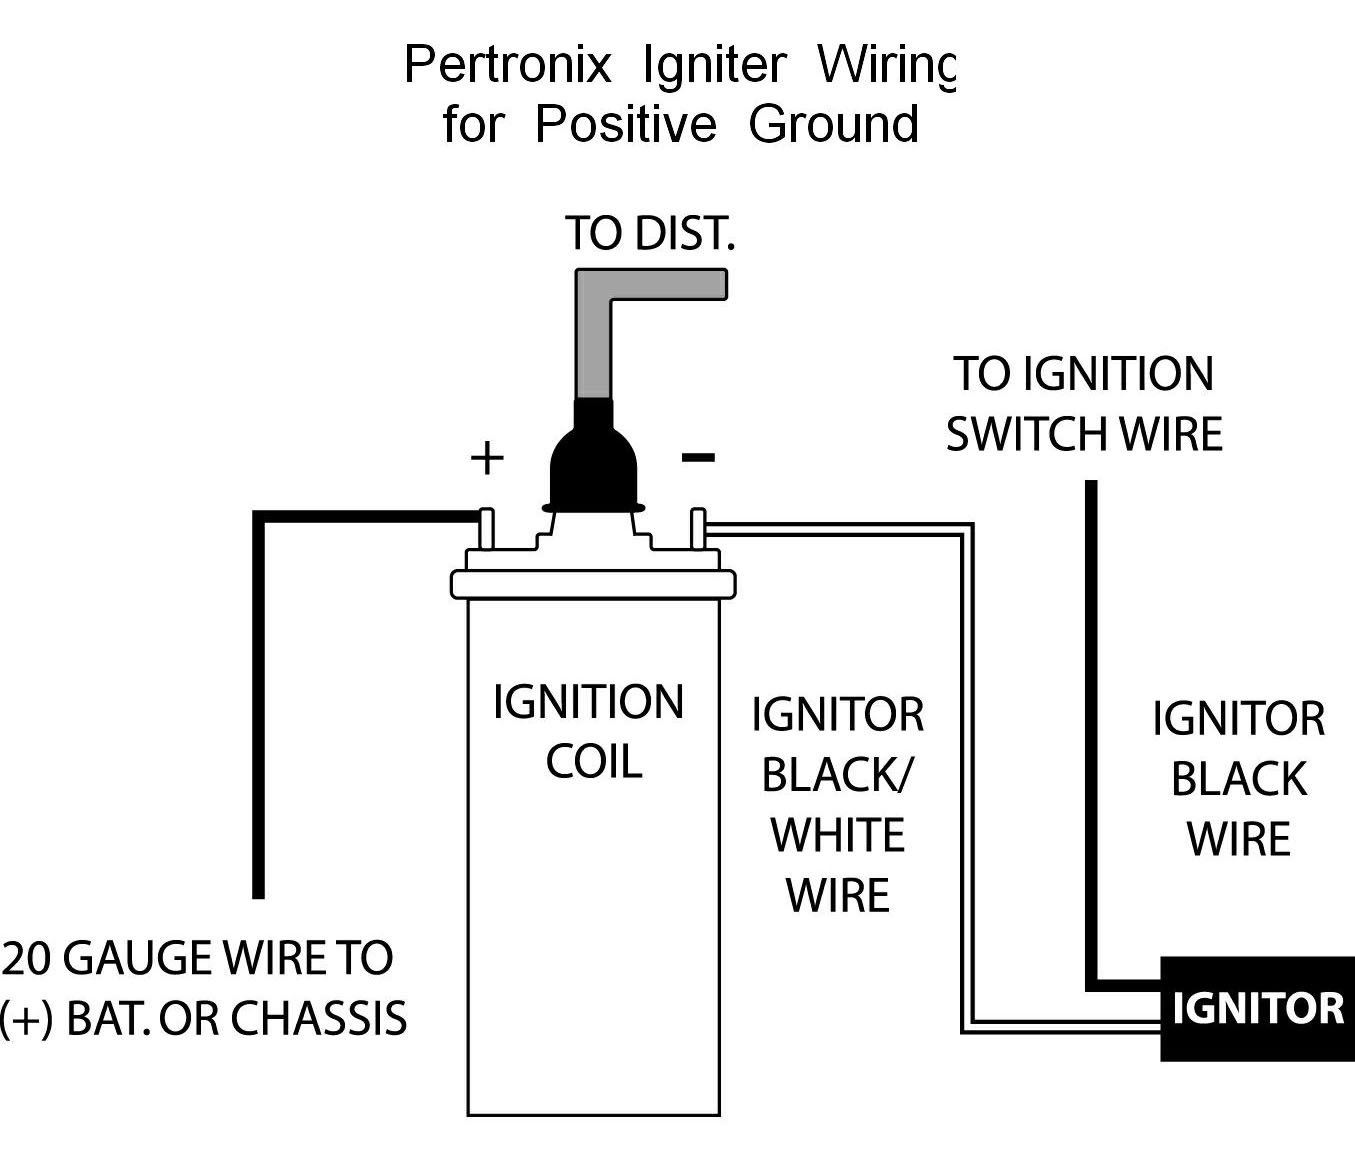 [DIAGRAM_38IU]  A95 Ford Tractor Ignition Coil Wiring | Wiring Library | Ford Pertronix Ignition Wiring Diagram |  | Wiring Library